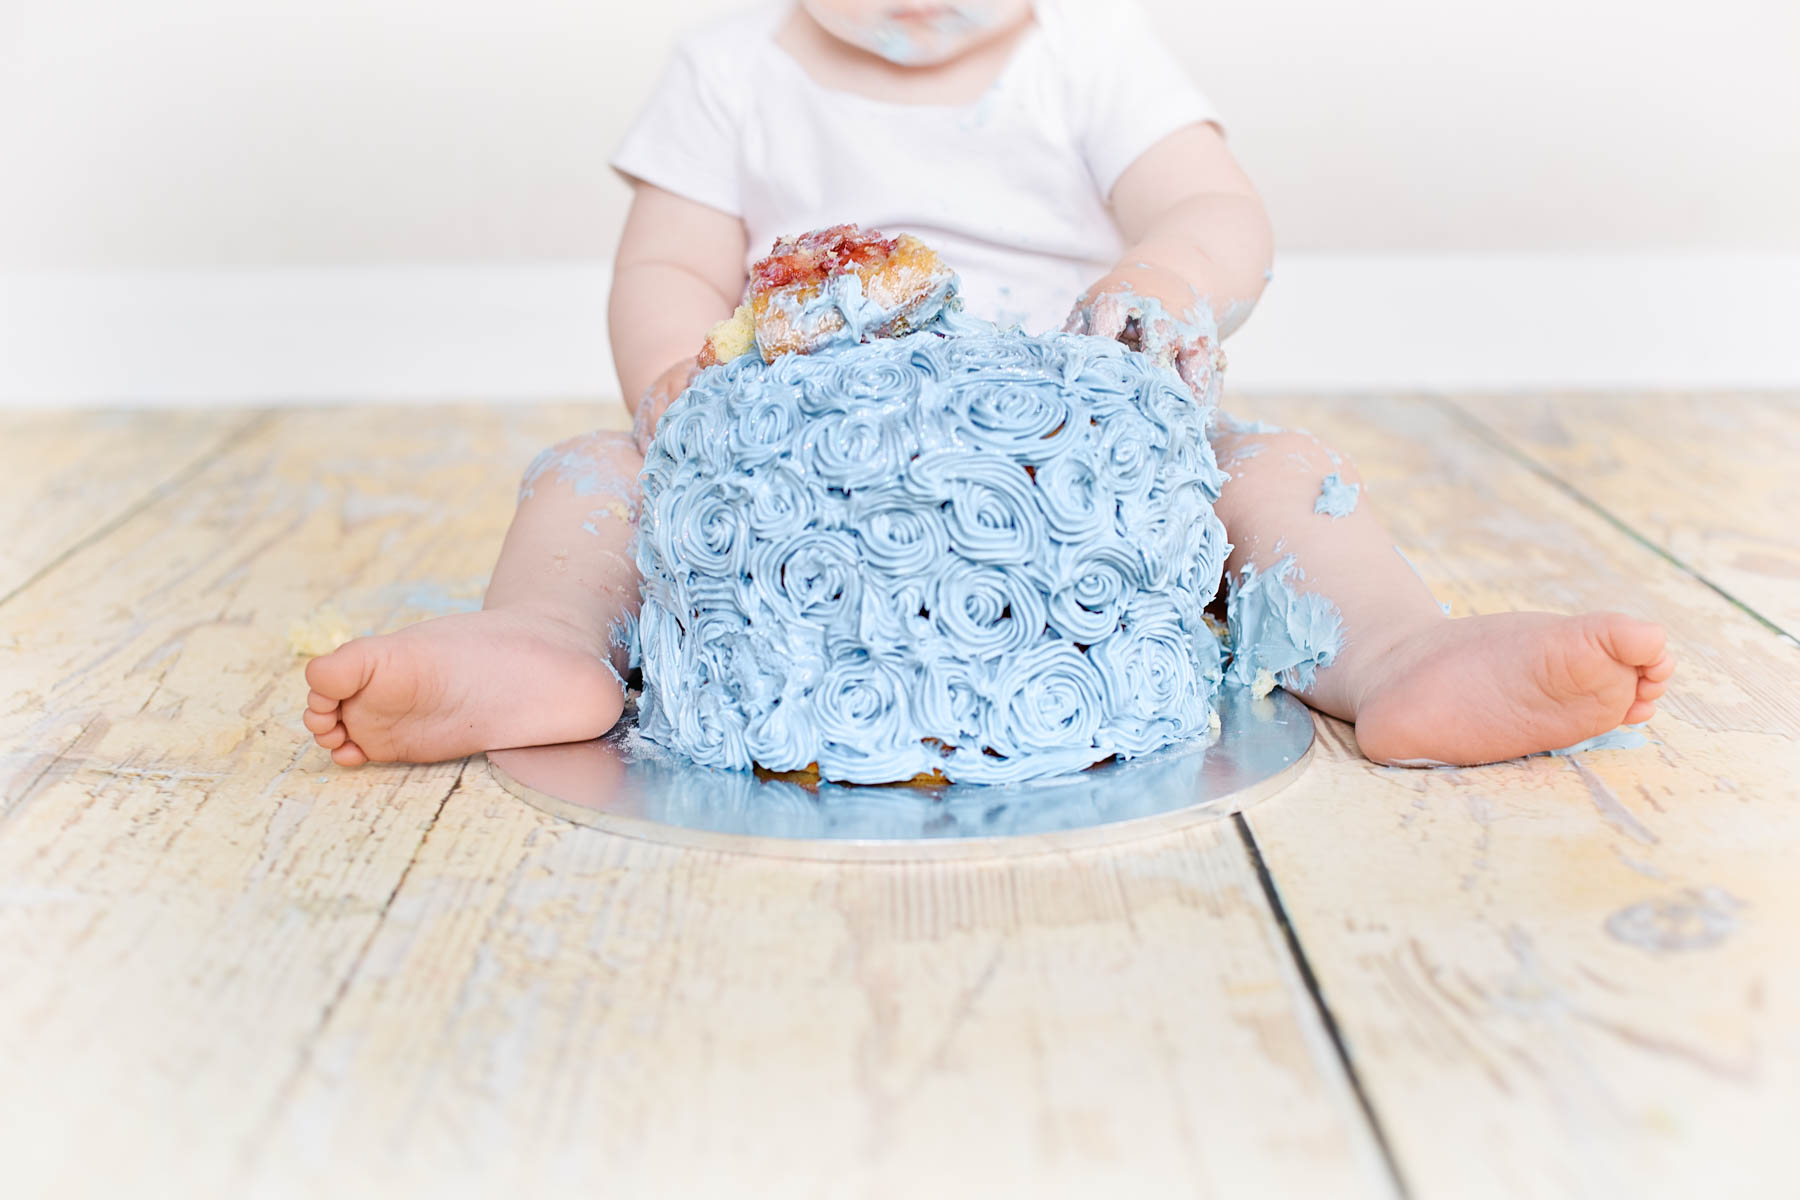 Cake-Smash-Photography-Glasgow-South-Lanarkshire-Dawn-Martin022